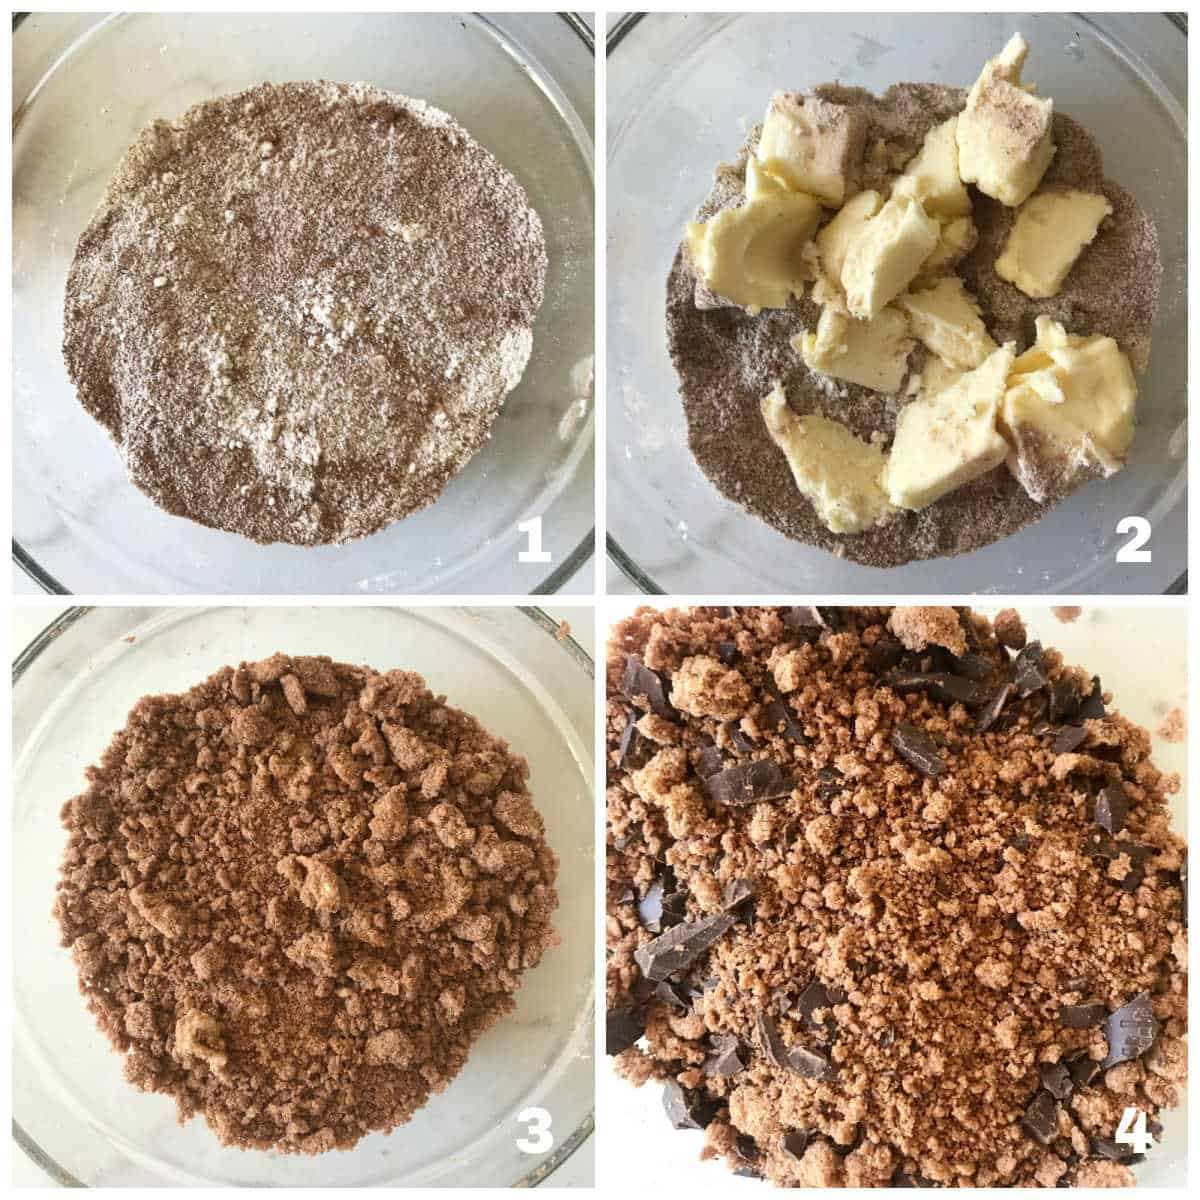 Chocolate crumble process collage, glass bowl with dry ingredients, adding butter and final mixture